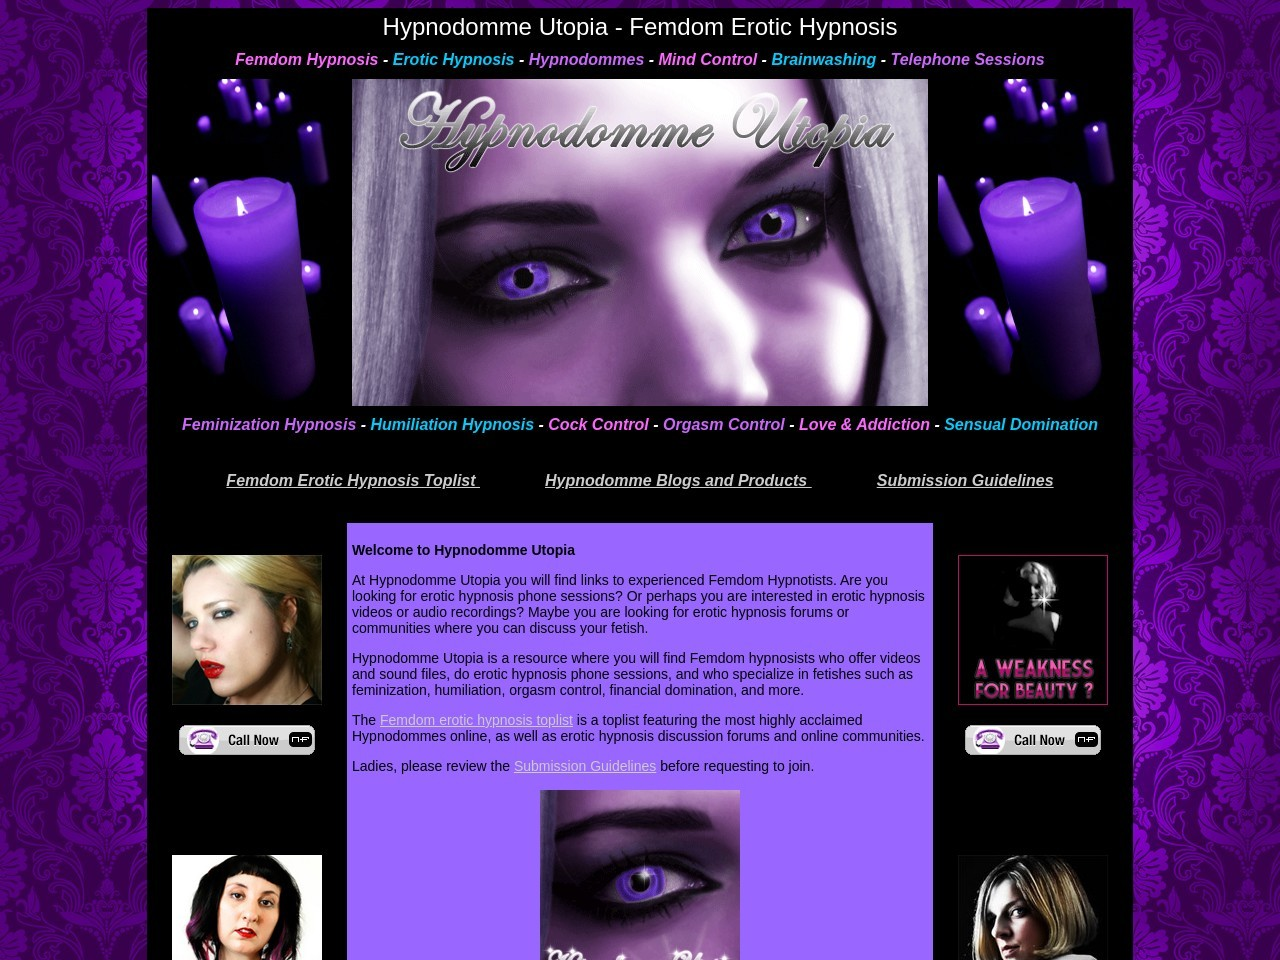 Agree with erotic hypnosis forums